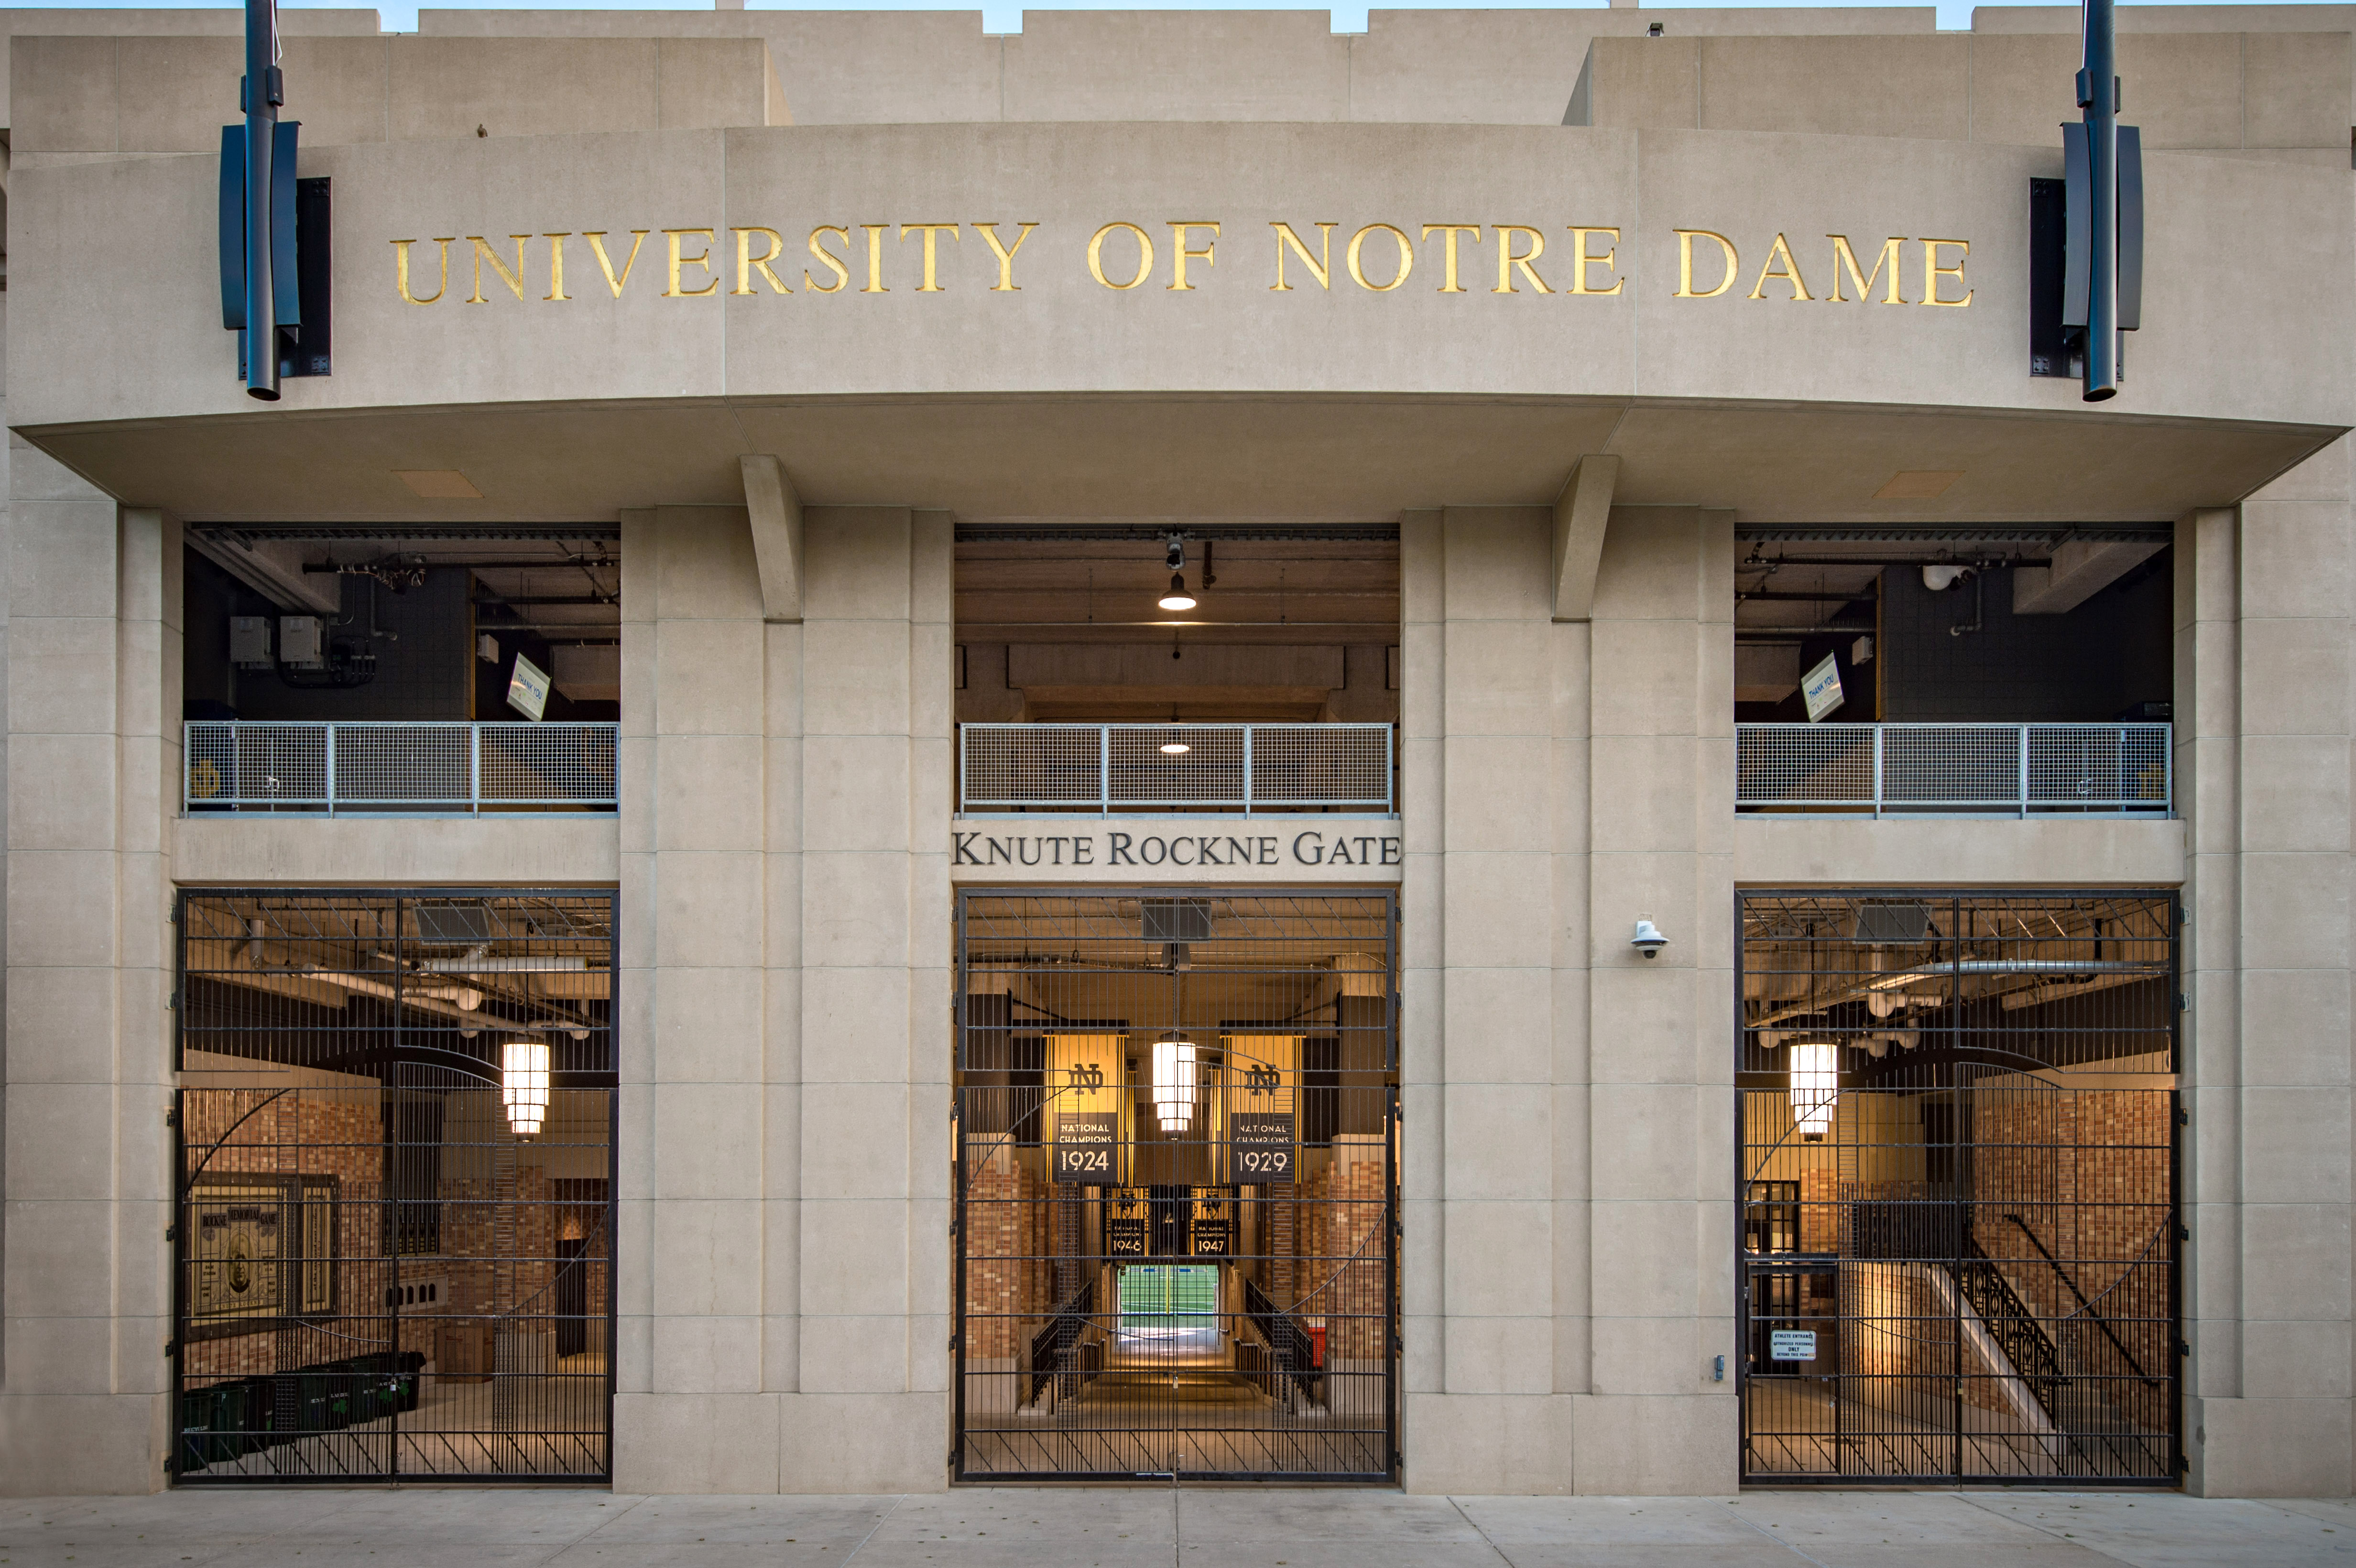 Notre Dame S New Football Stadium Is A Modern Ode To Knute Rockne S Vision Ncaa Com